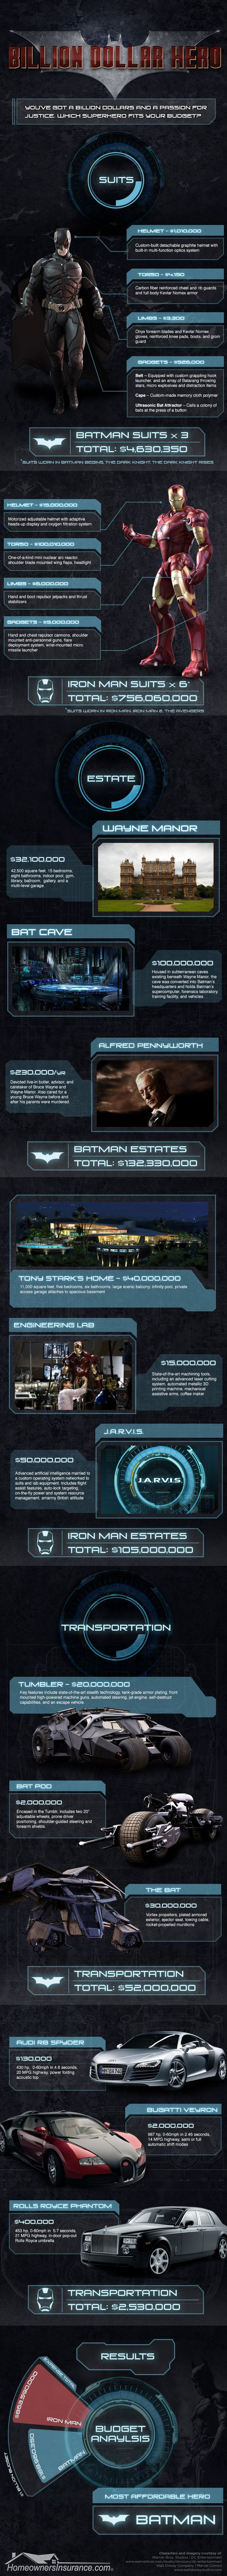 created a very interesting graphic showing what the real world costs would be if you were either Batman or Iron Man. As we all know these are both men who didn't actually have super powers themselves but go to great lengths with their gear/gadgets to fight crime.  Ever wondered how much these suits actually cost?  This info-graphic calculates the cost of each of these heroes equipment all the way down to even the price of there lairs and cars.